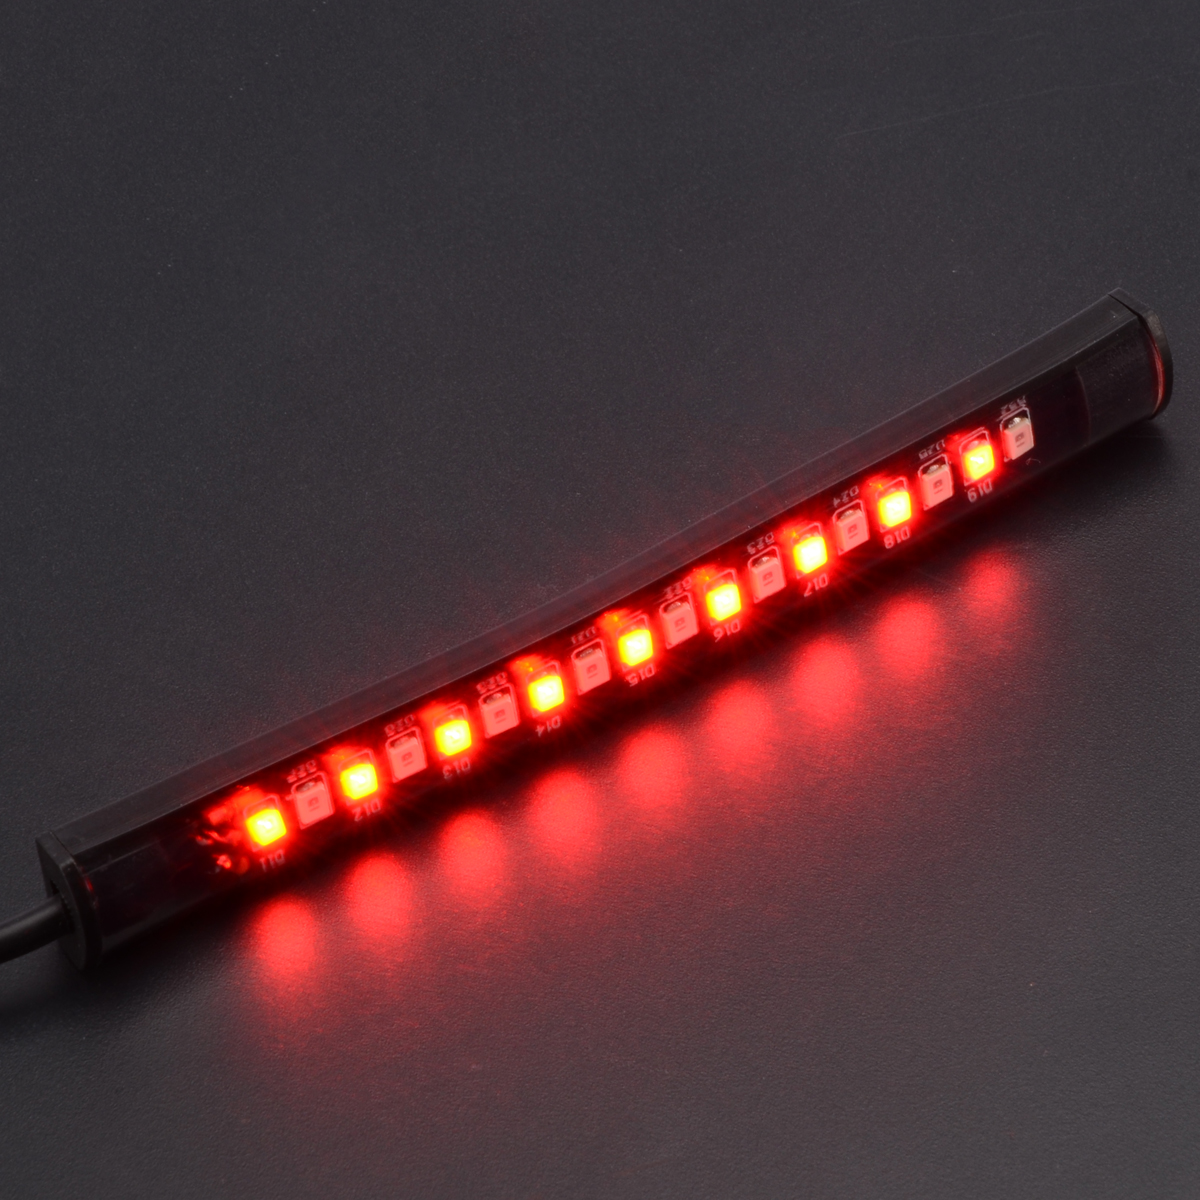 12V Motorcycle Scooter 18 LED Red Rear Tail Stop Brake Light Lamp